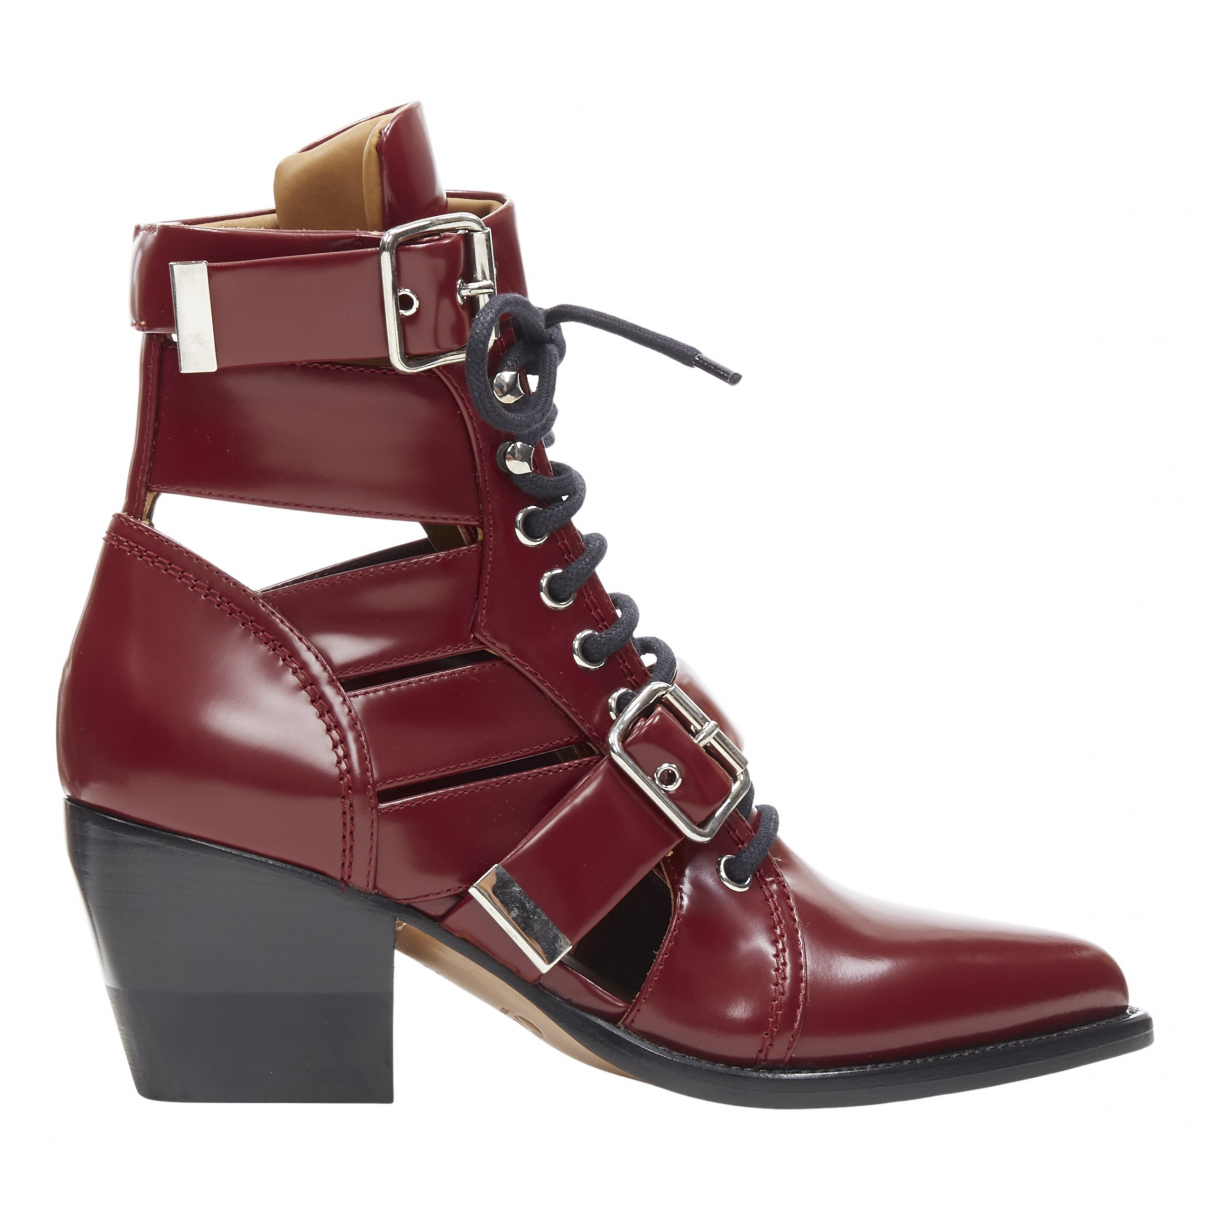 Chloé Rylee Burgundy Leather Ankle boots for Women